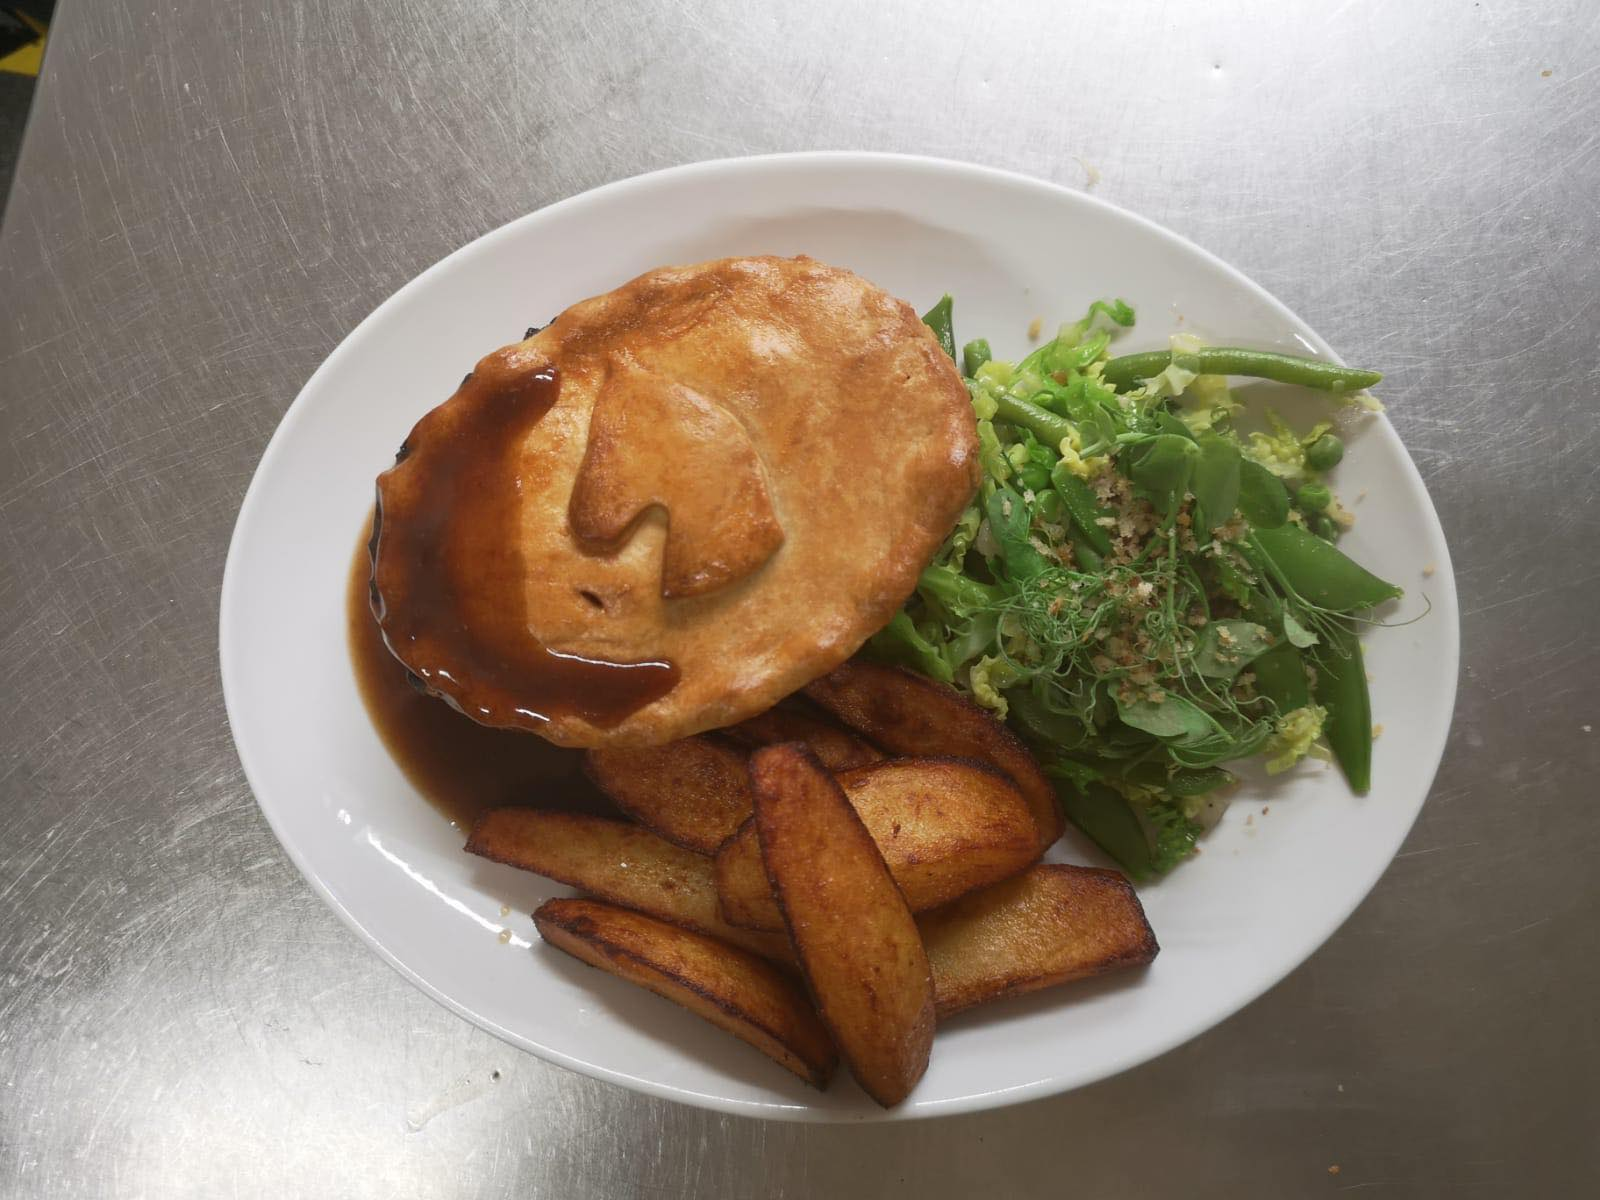 Homemade Pie and Hand Cut Chips